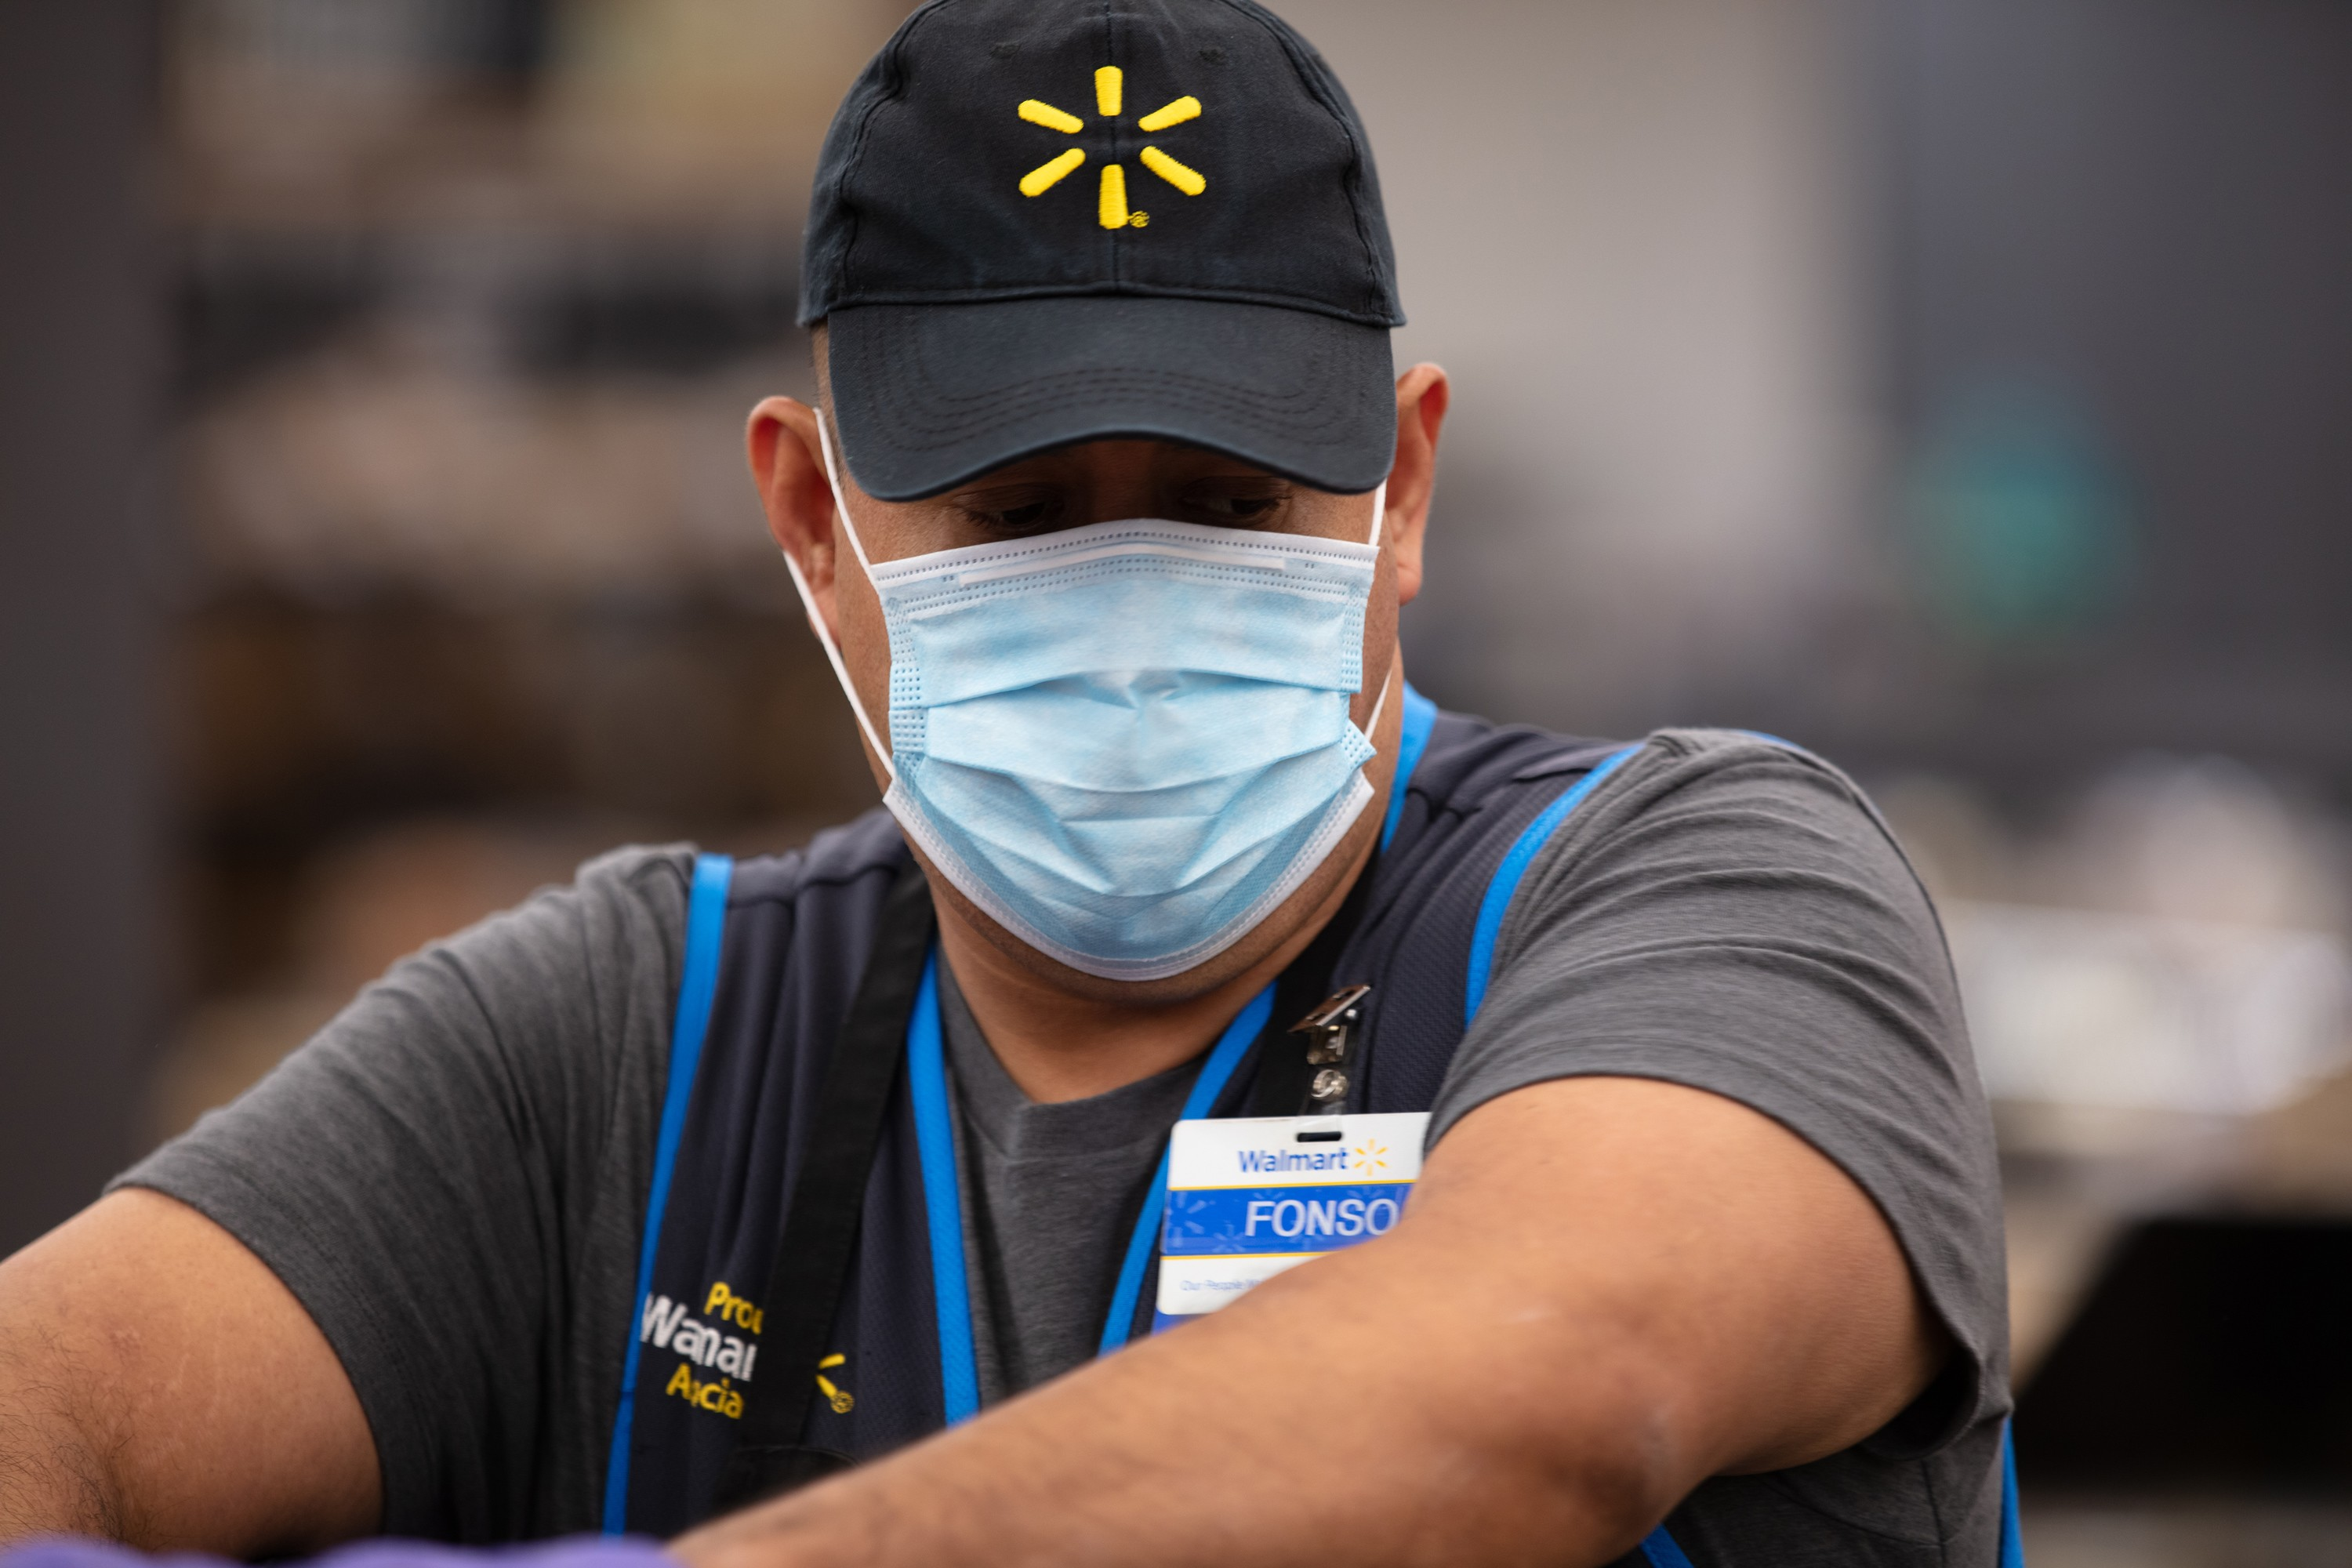 Fonso, a Walmart associate, wears a mask